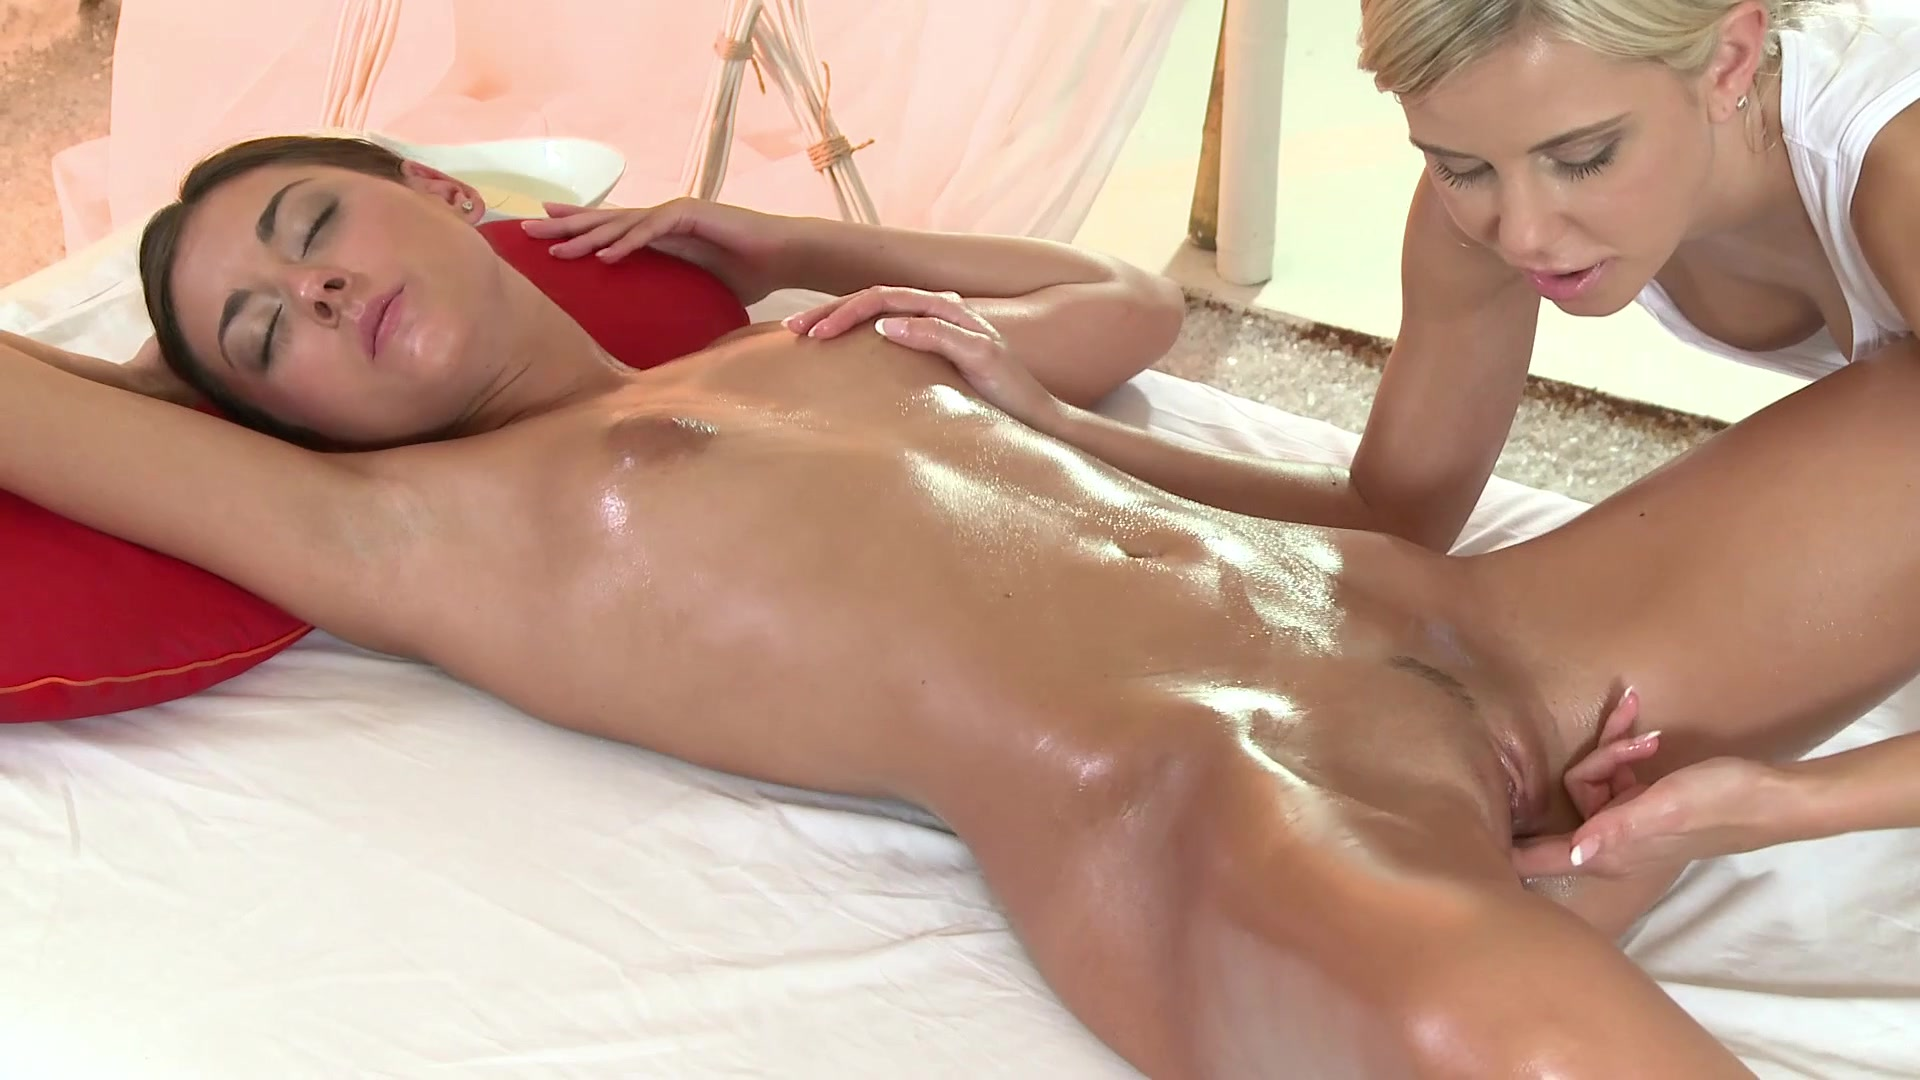 Stunning Hot Naked Girl Achieves Magnificent Orgasms During Her Erotic Massage